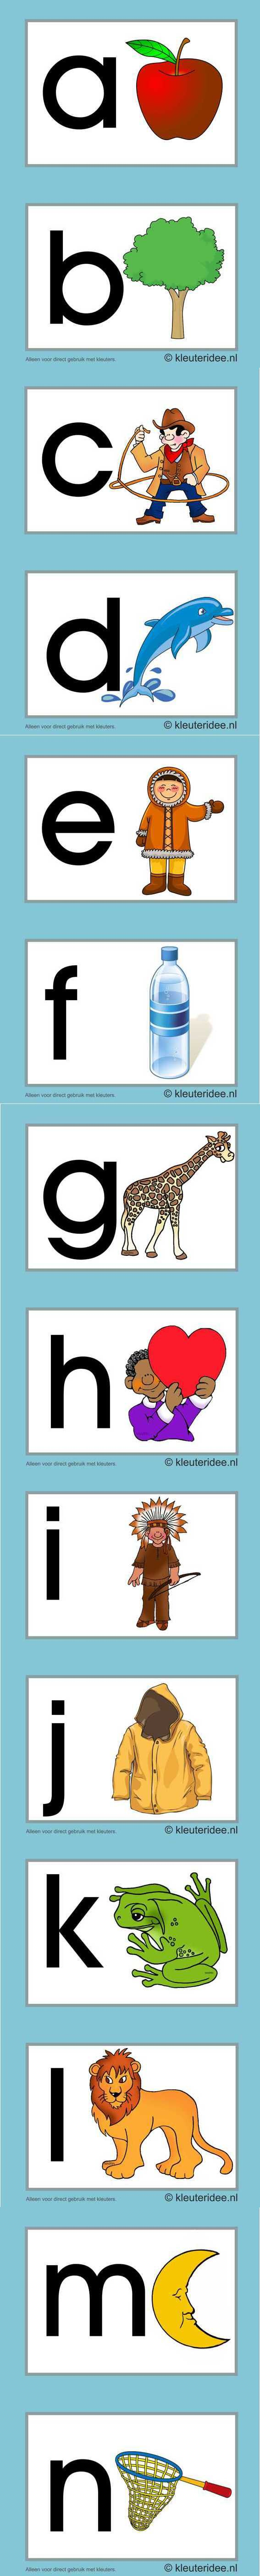 Letterkaarten voor kleuters a, n, kleuteridee.nl , abc cards for preschool , free printable